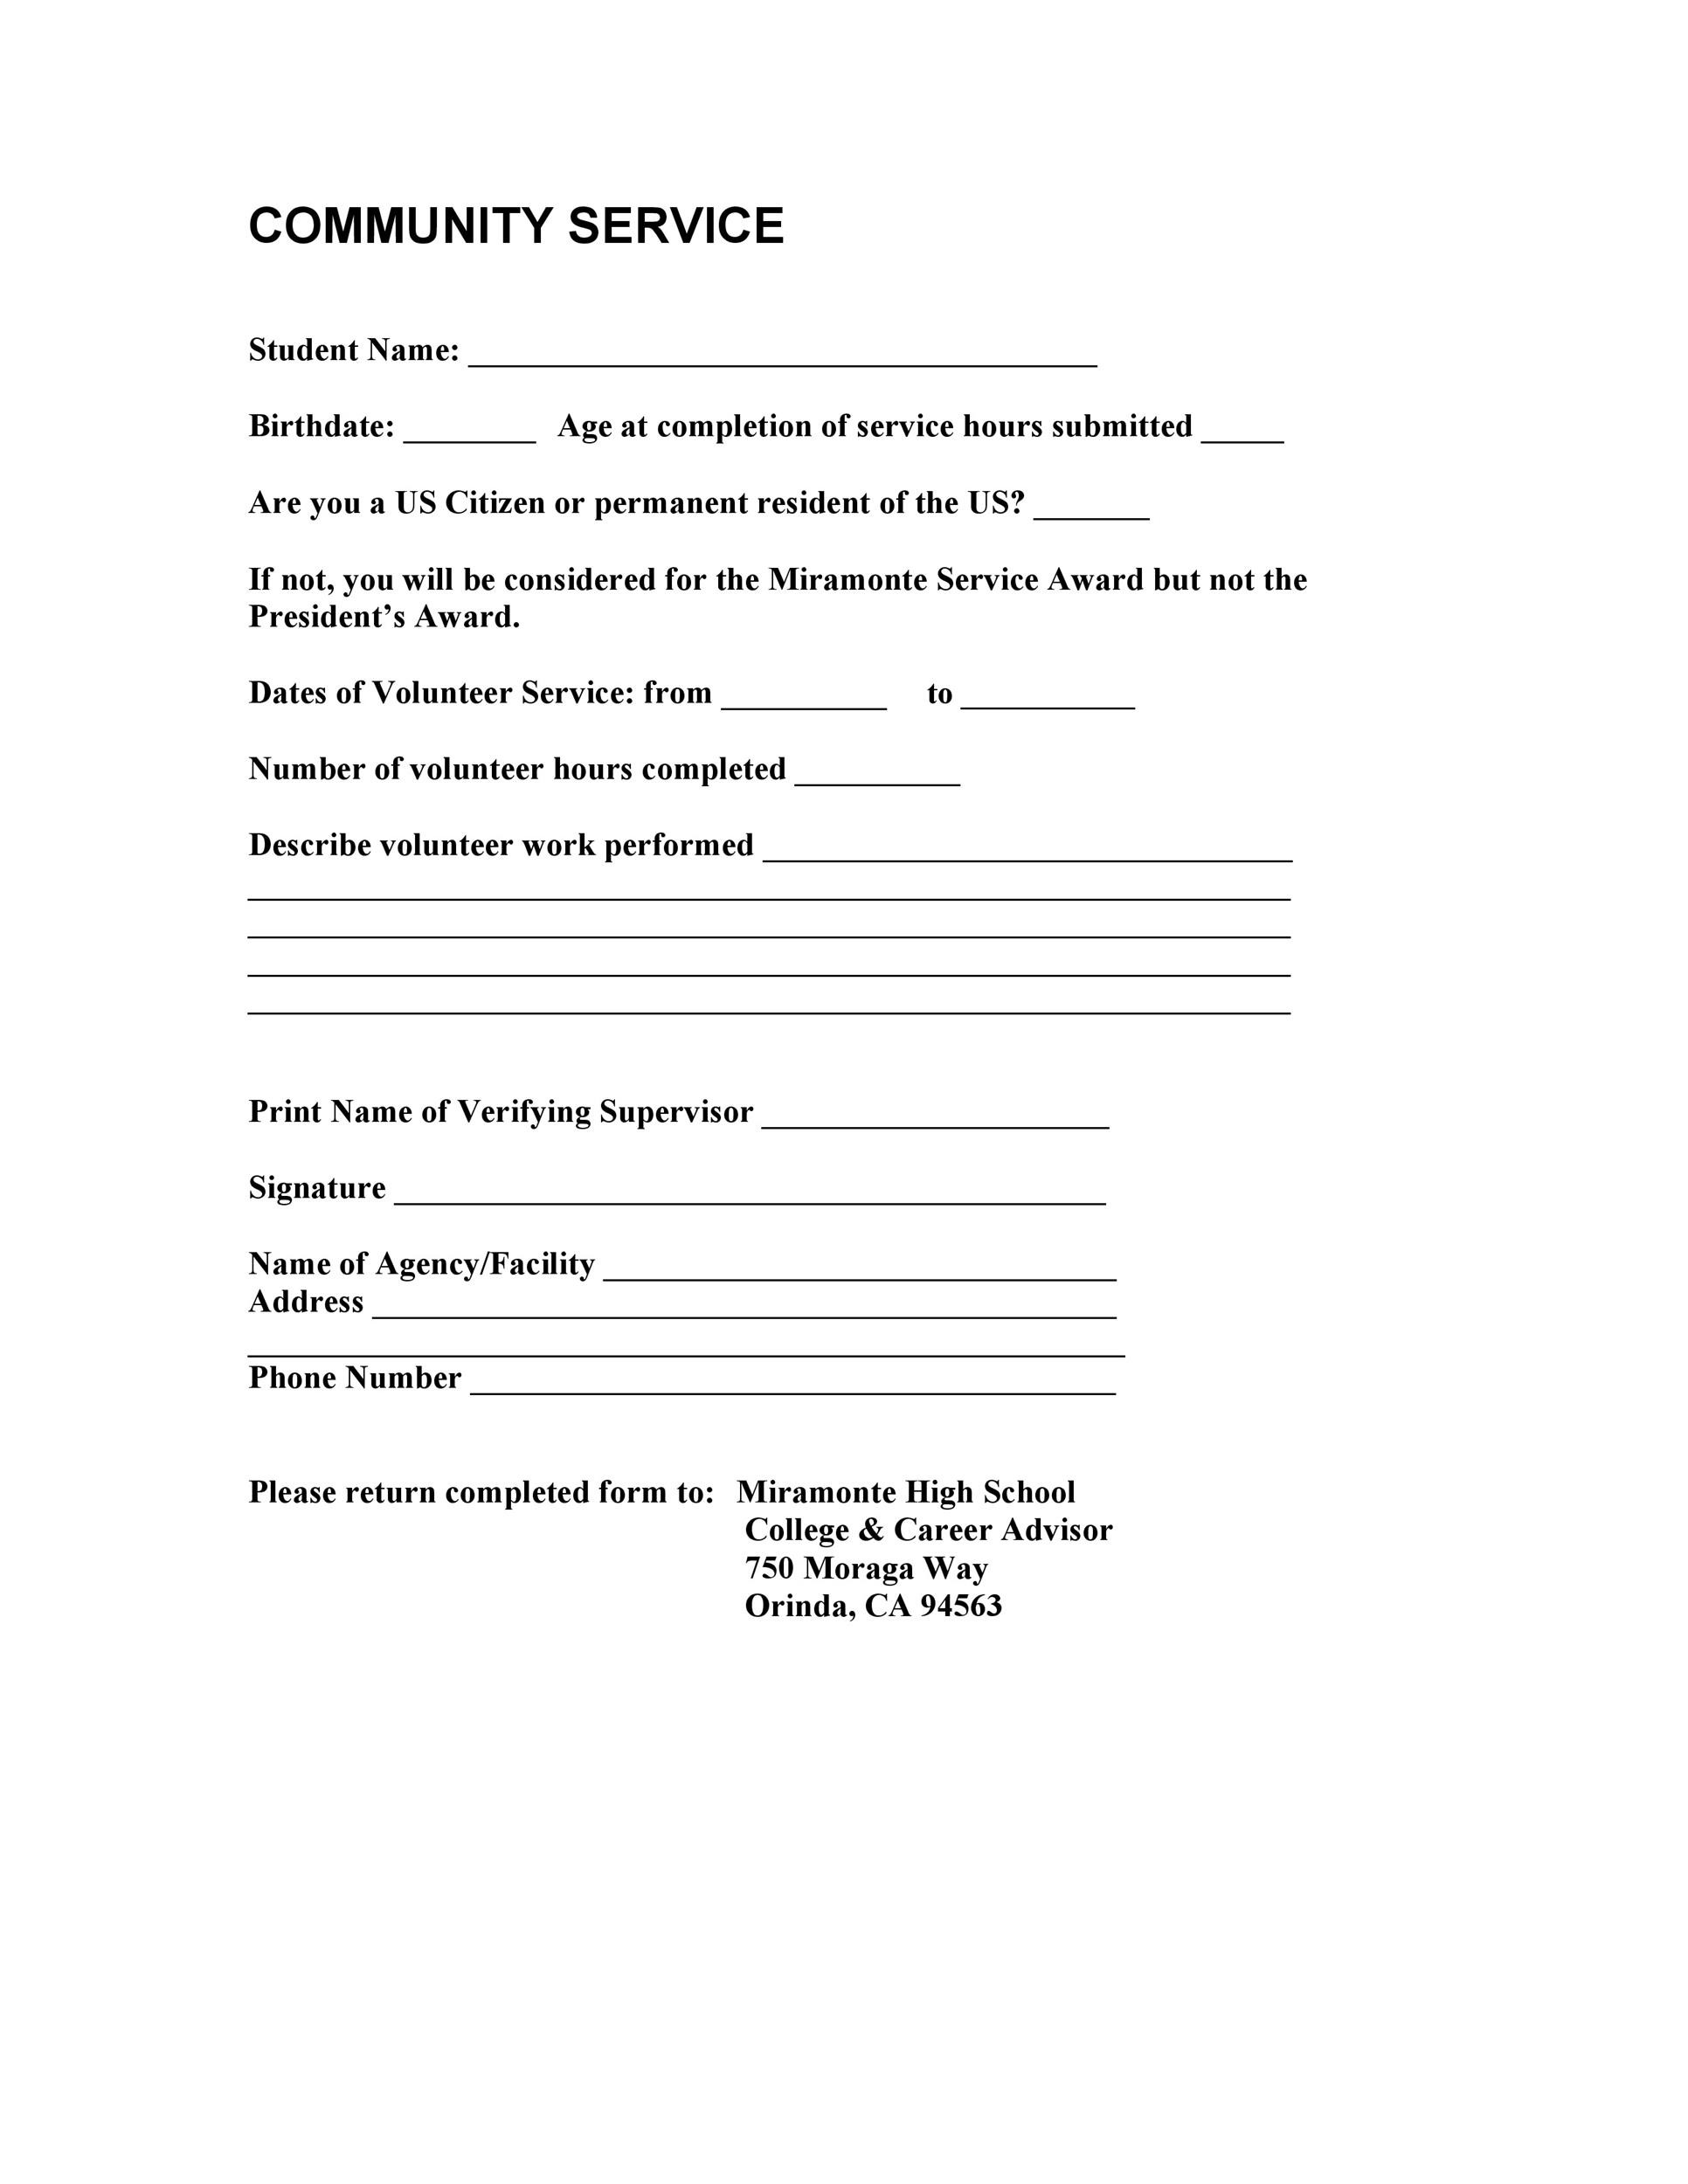 community service hours template Community Service Letter - 40  Templates [Completion, Verification]